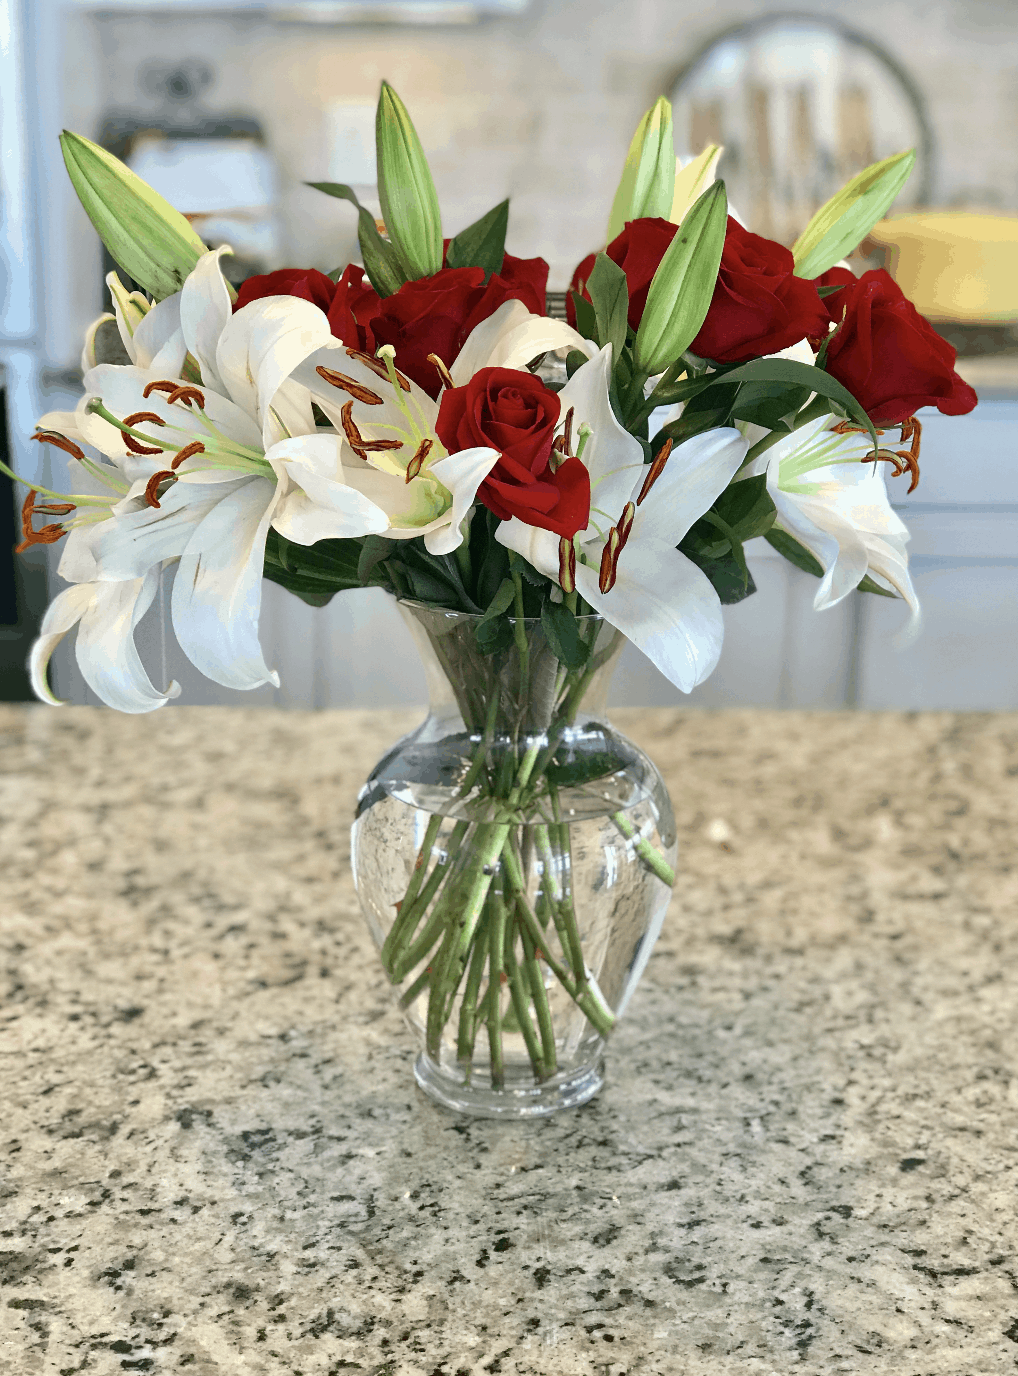 Amazon flower delivery bouquets under 30 shipped passionate my amazon flowers still going strong after a few days i snagged these when they were 41 and now theyre up to 57 be watching because the prices change izmirmasajfo